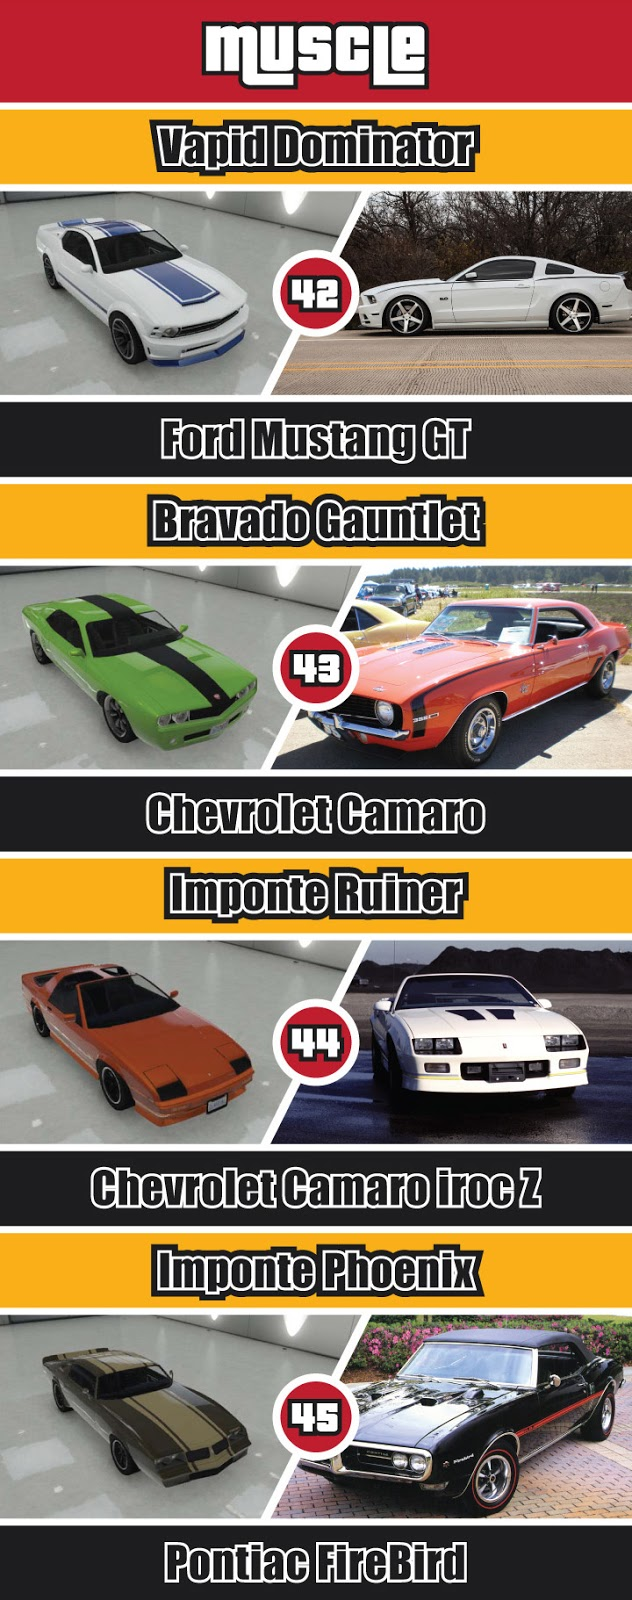 Gta V Cars And Their Real Life Counterparts Infographic Carhoots